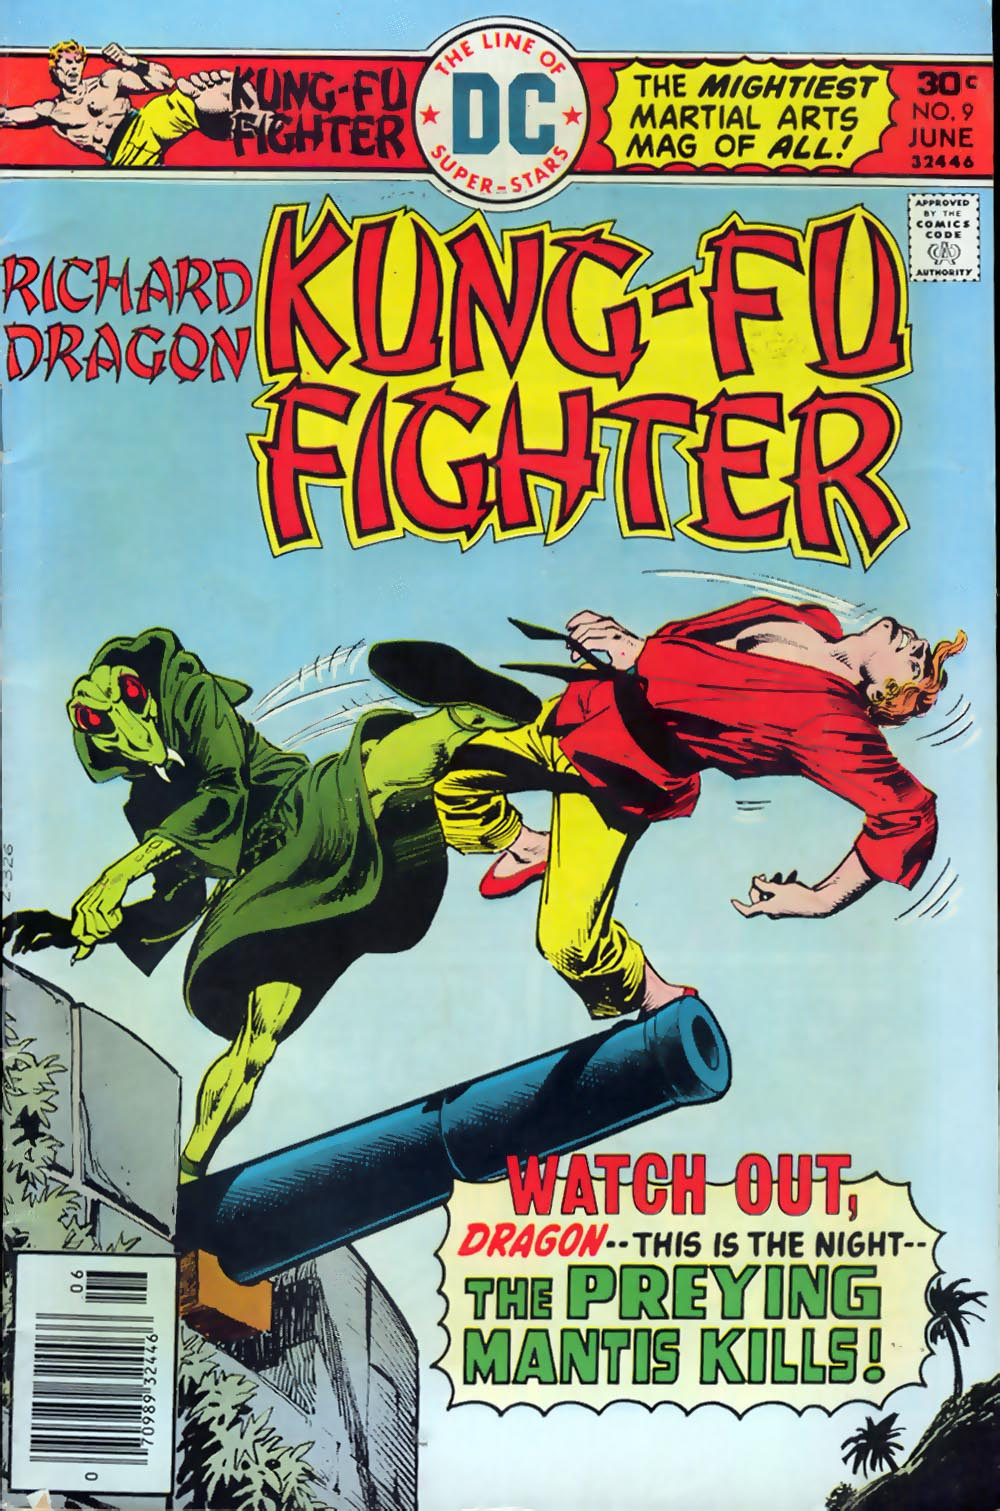 Richard Dragon, Kung-Fu Fighter 9 Page 1